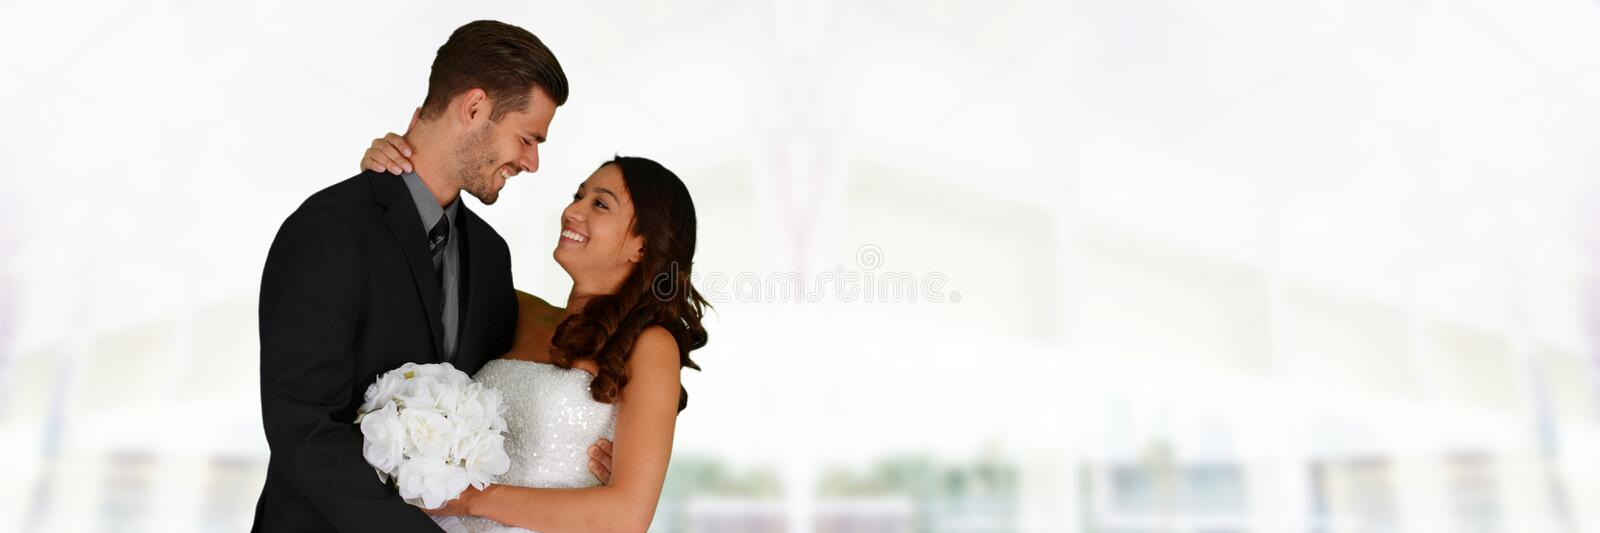 Wedding. Woman in a beautiful white wedding dress with groom royalty free stock images